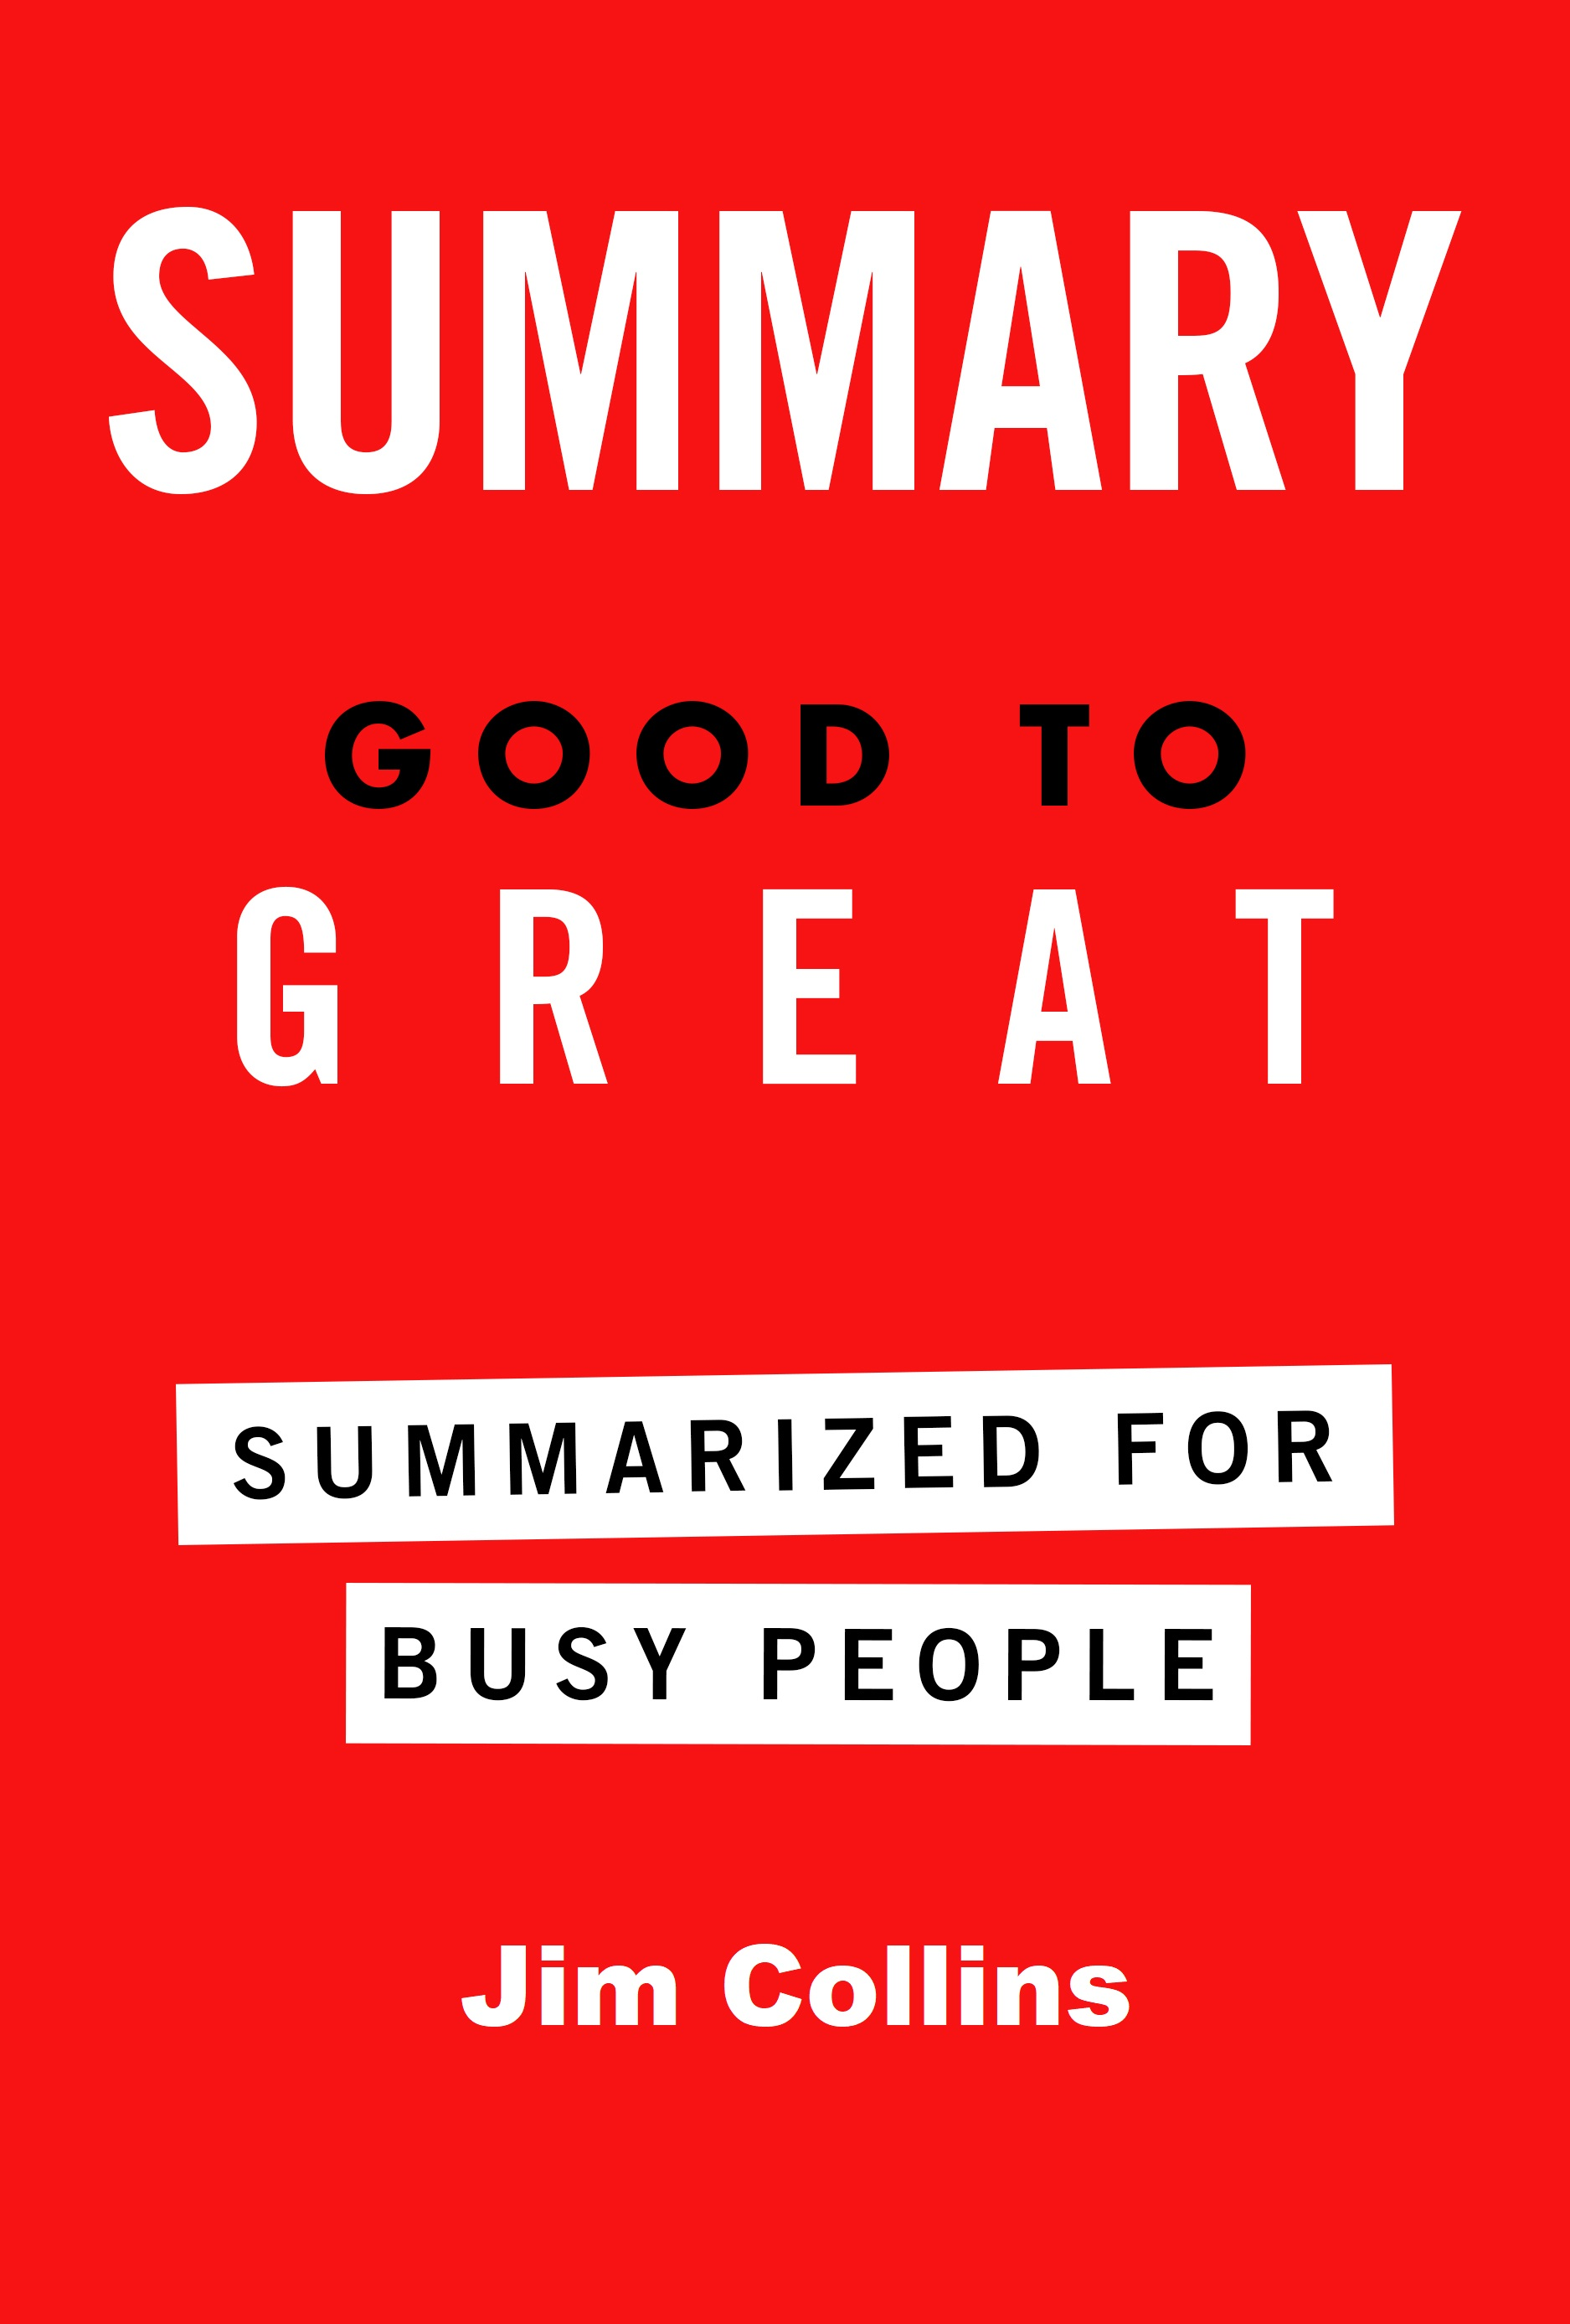 Good Book Cover Pictures : Smashwords good to great summarized for busy people a